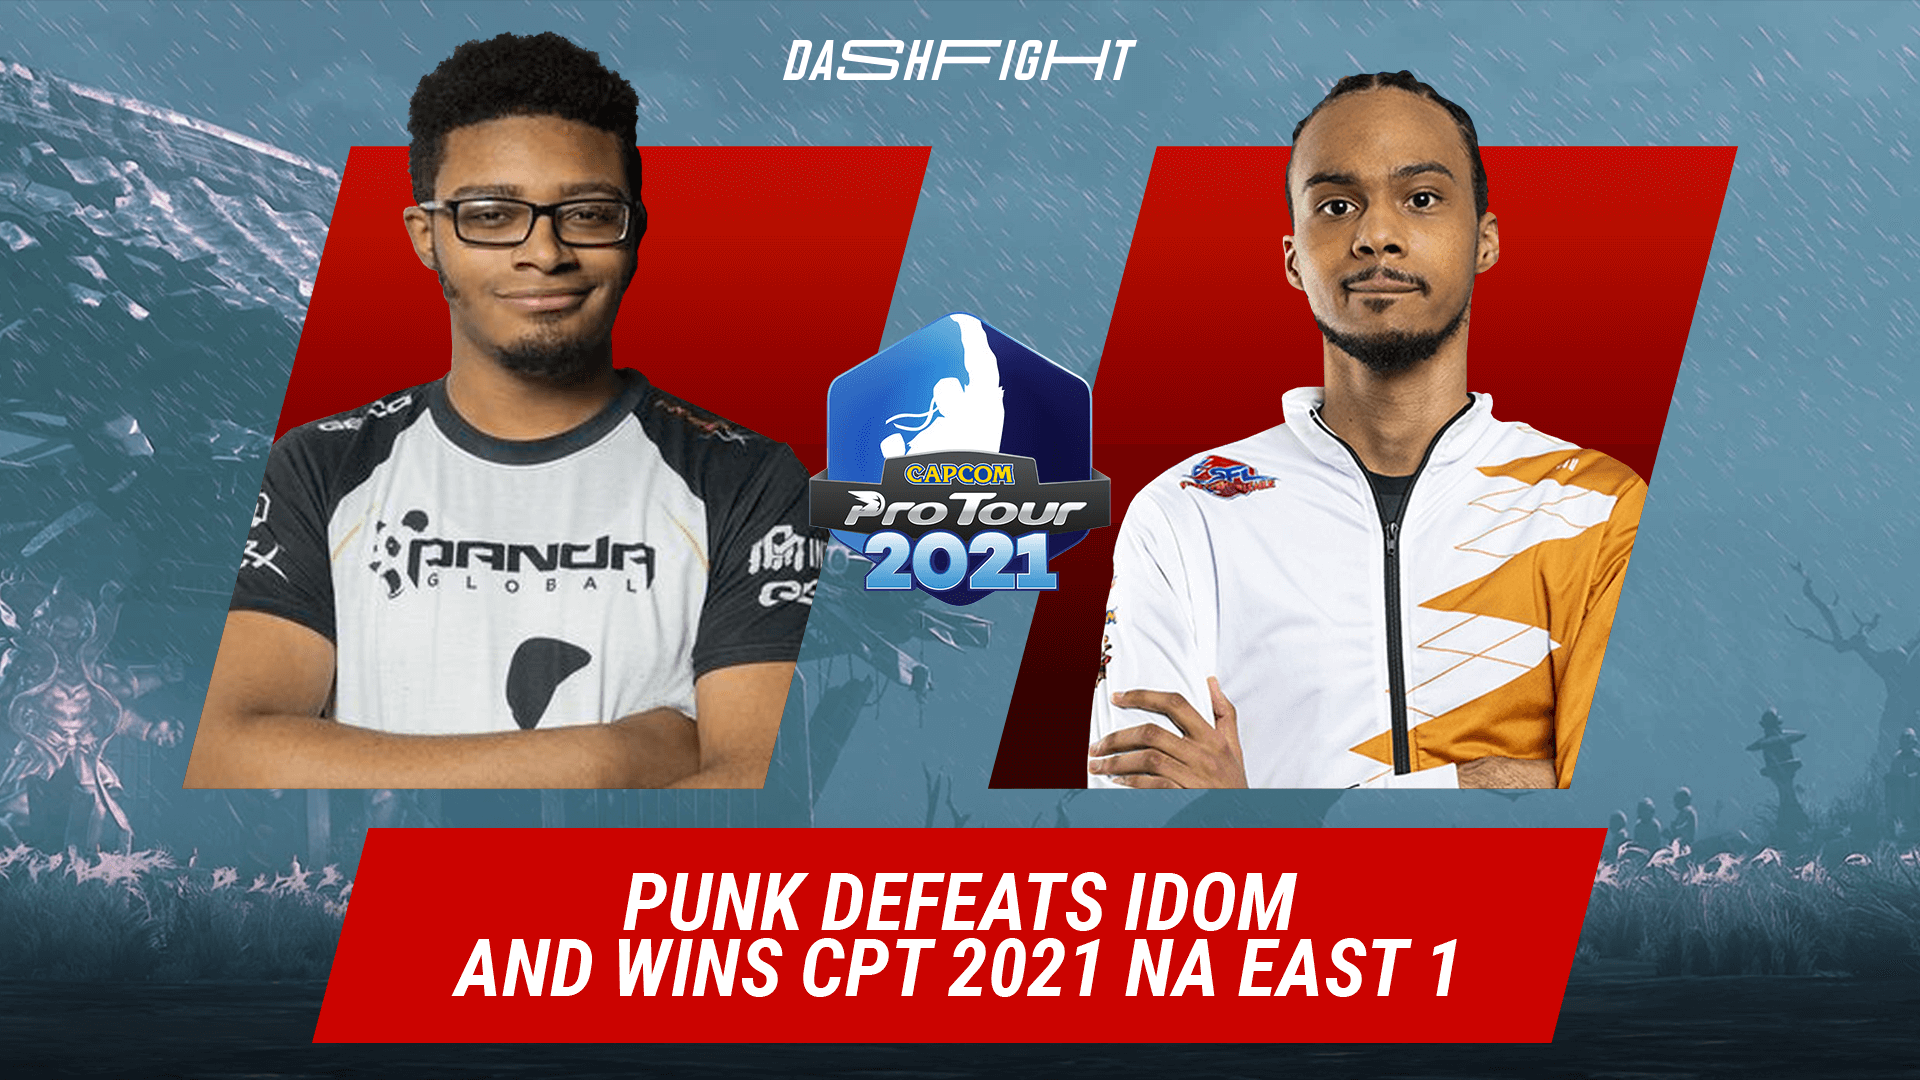 Punk defeats iDom and wins CPT 2021 NA East 1